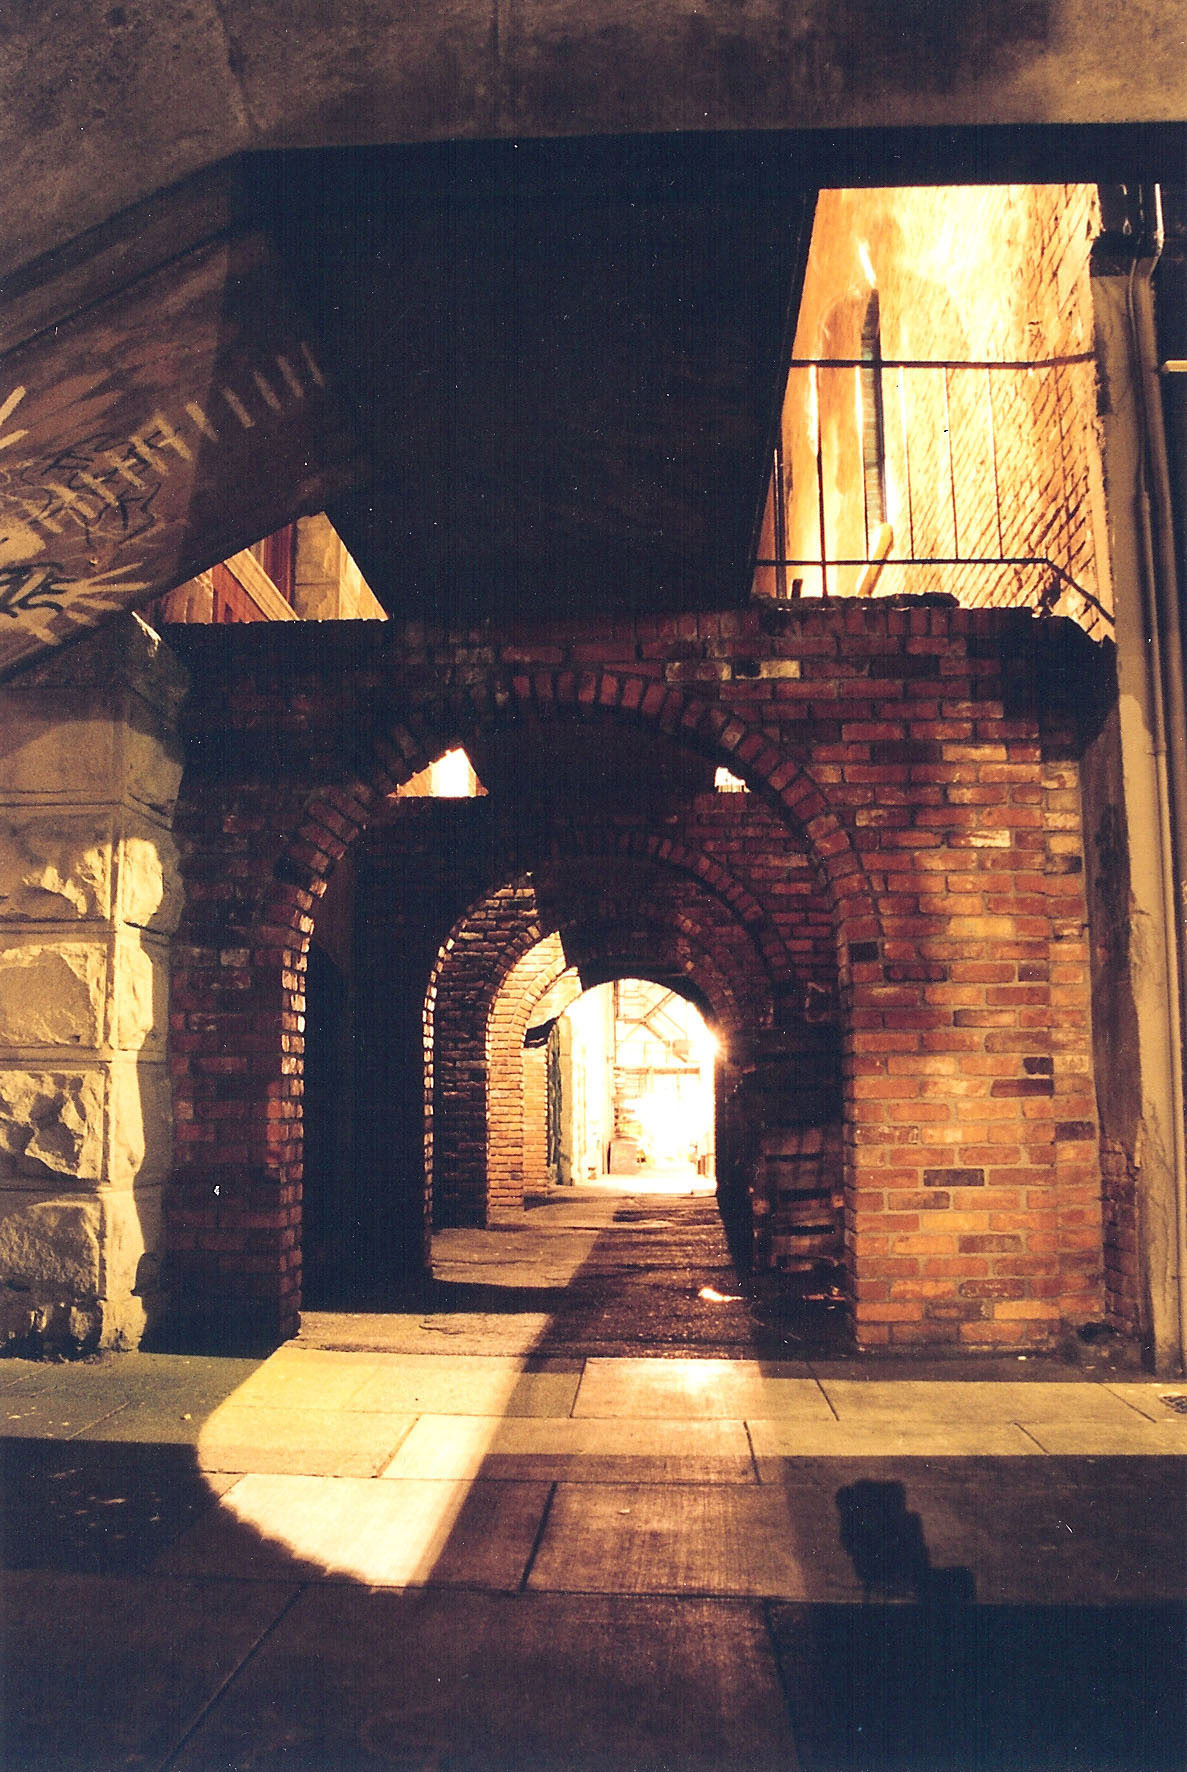 Helmcken Alley arches and ghost